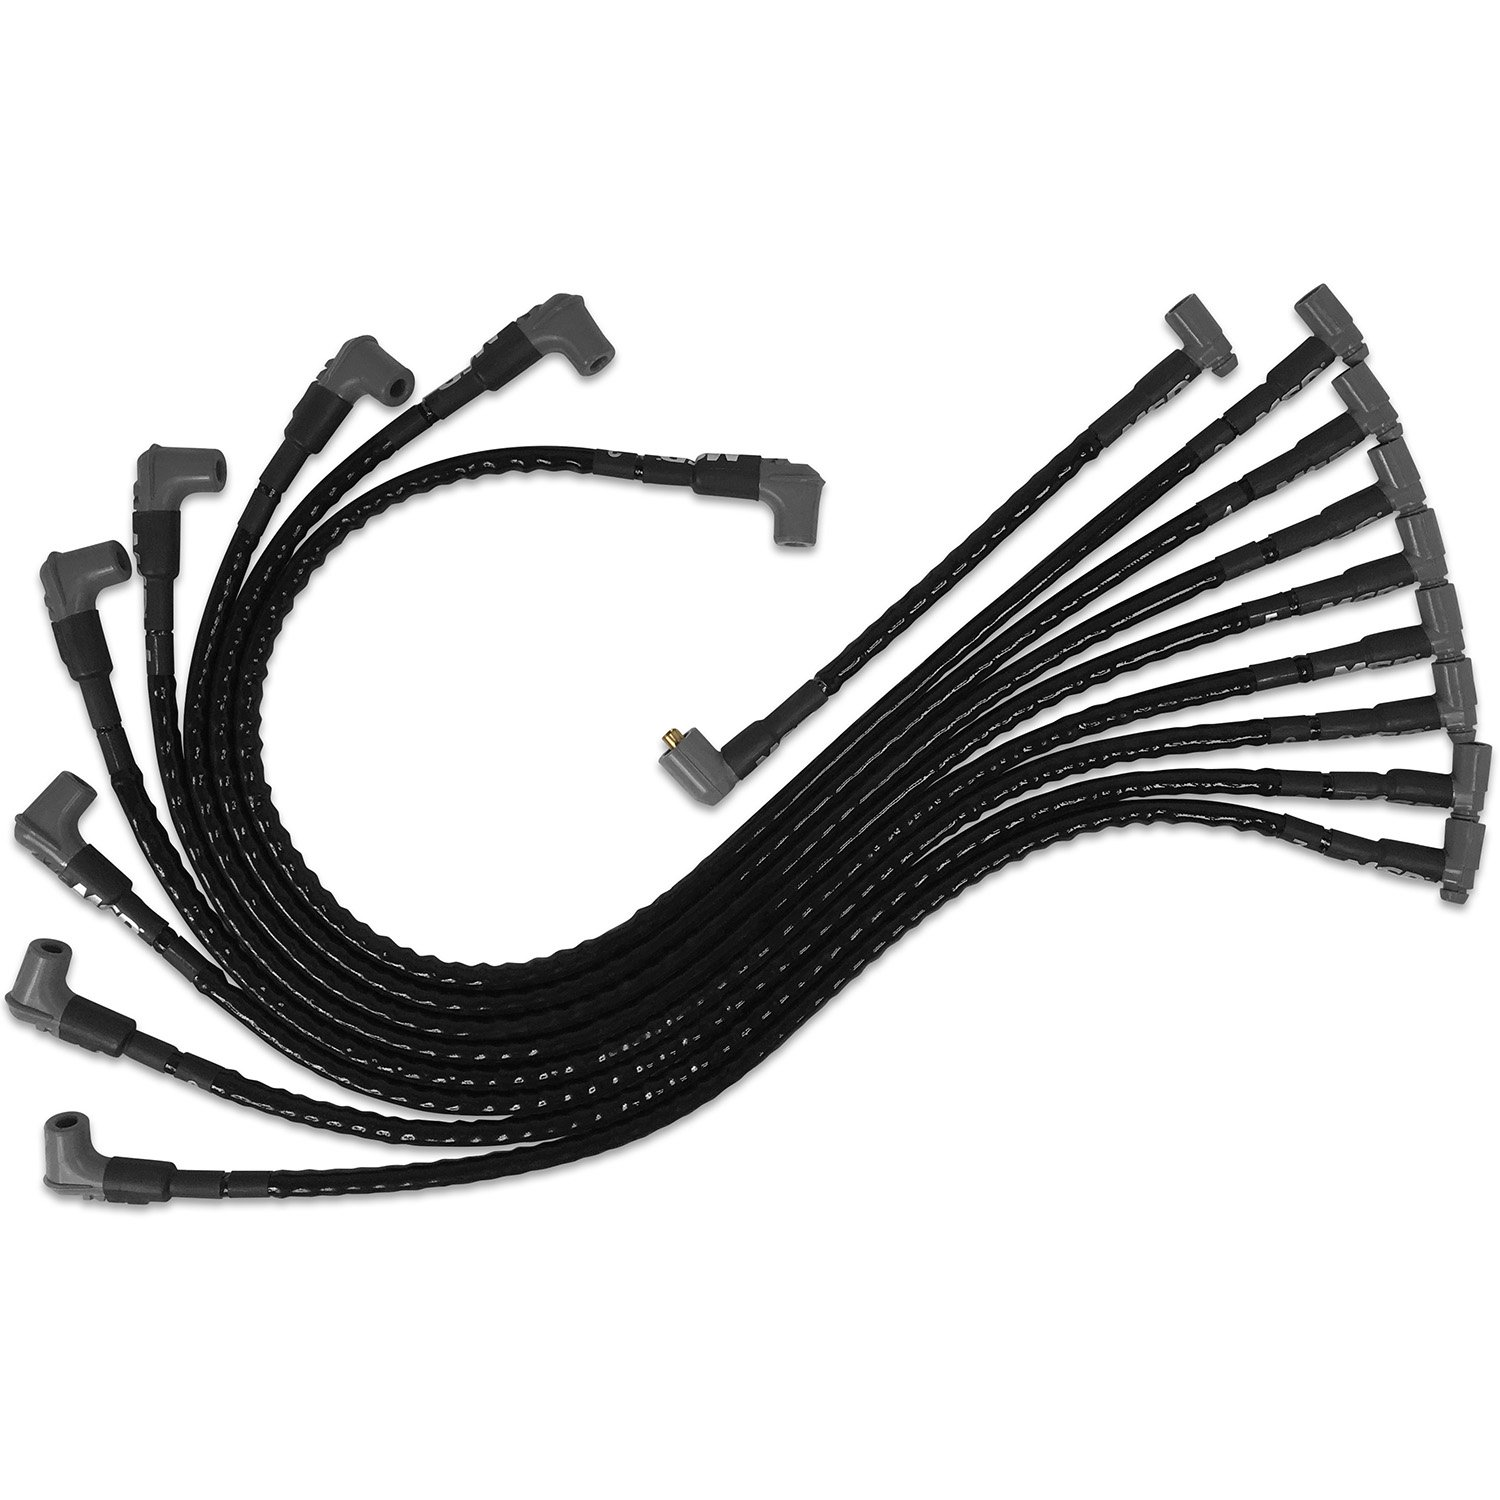 Msd Sleeved Spark Plug Wires For Sbc Under Exhaust Hei